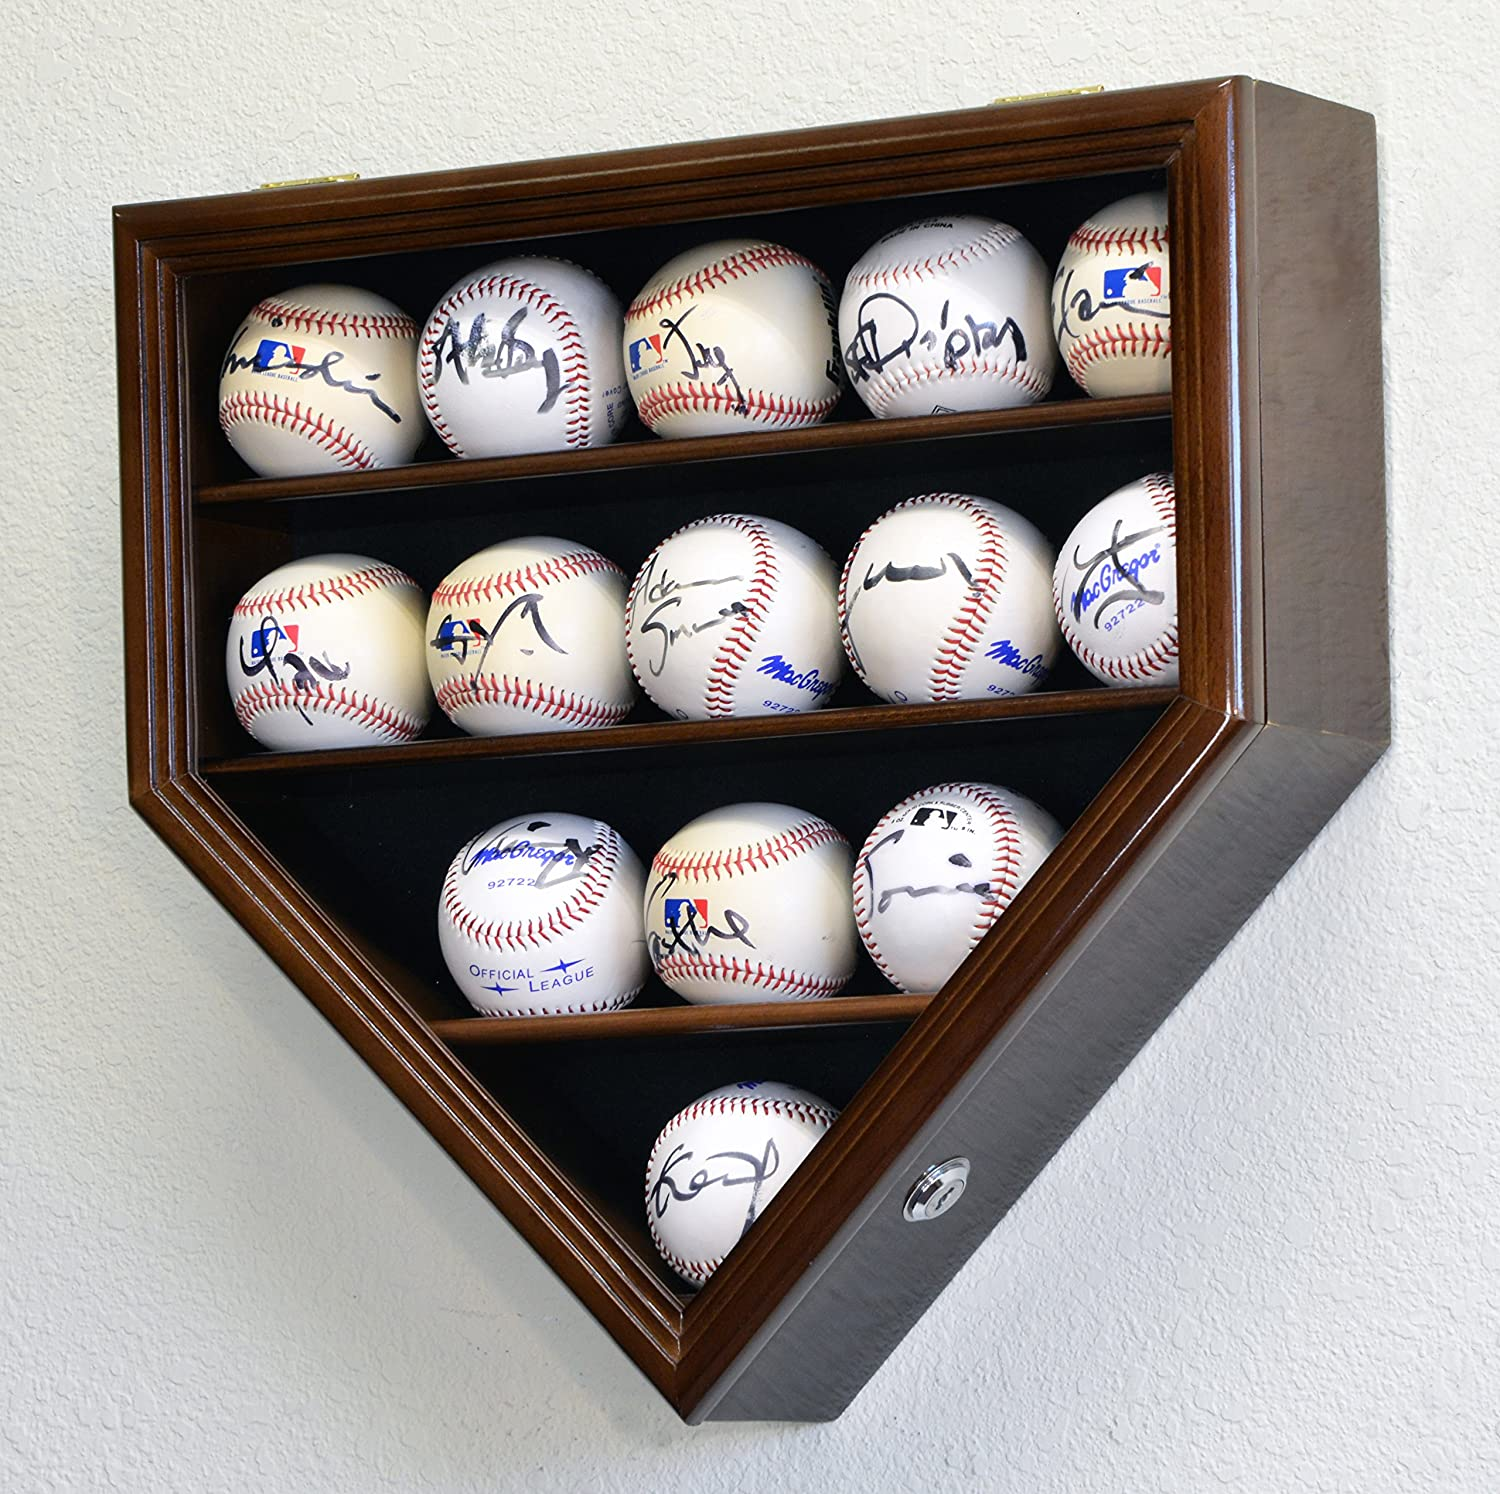 14 Baseball Ball Display Case Cabinet Holder Wall Rack Home Plate Shaped 98% UV Protection- Lockable